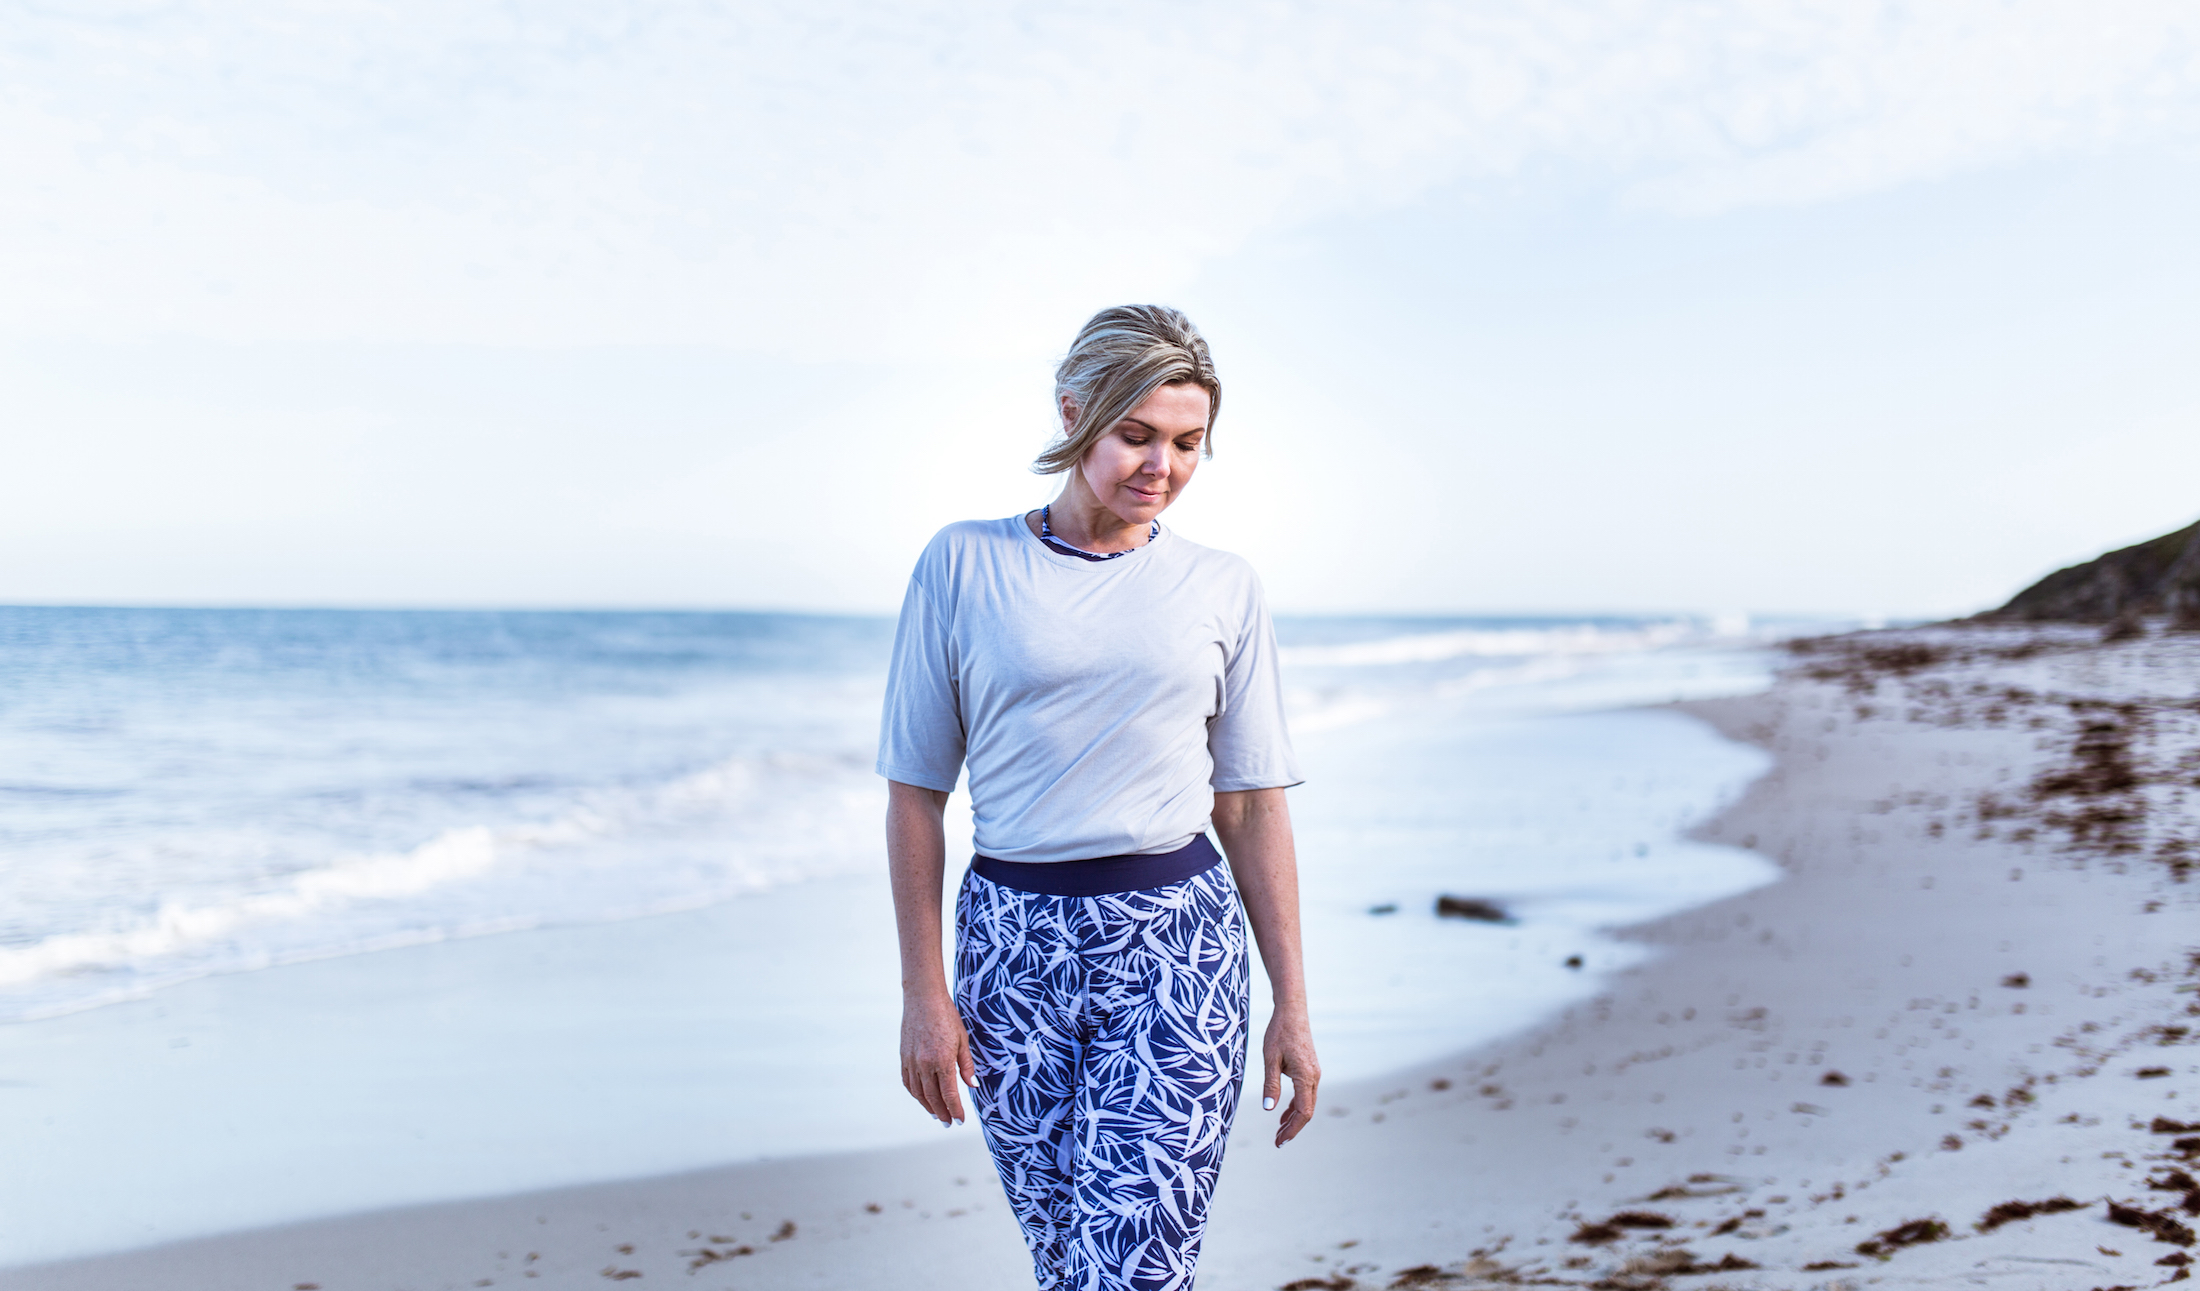 Sophie wears the  Hailey Knot Tee  in Platinum and  Billie Legging  in Paradise